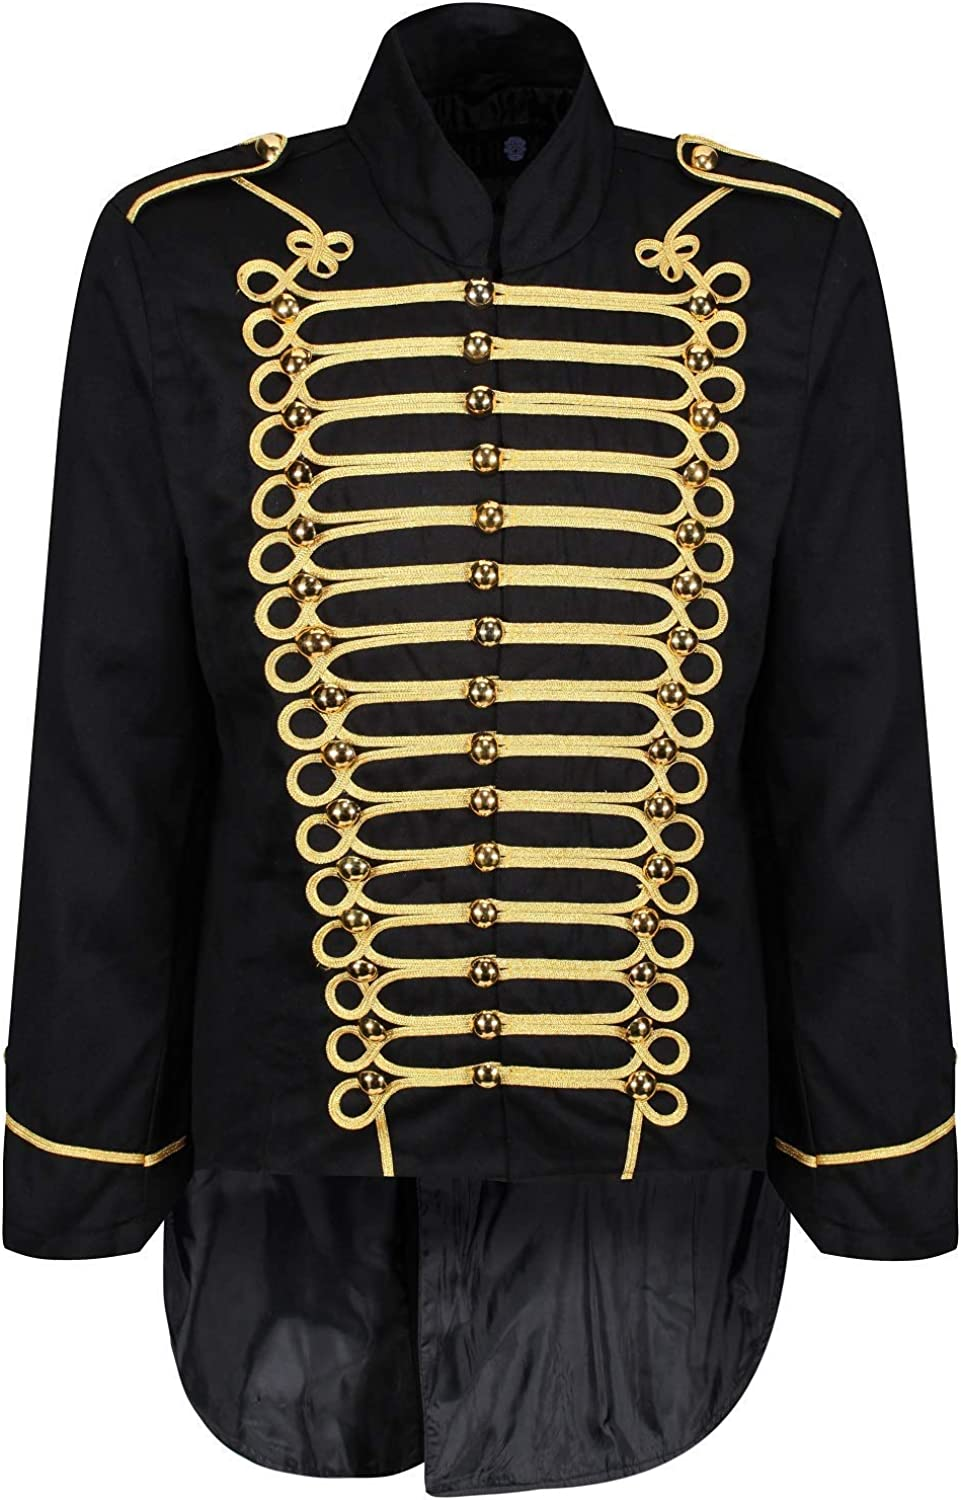 Ro Rox famous Purchase Men's Parade Jacket Drummer Gothic Marching Tailcoat Band